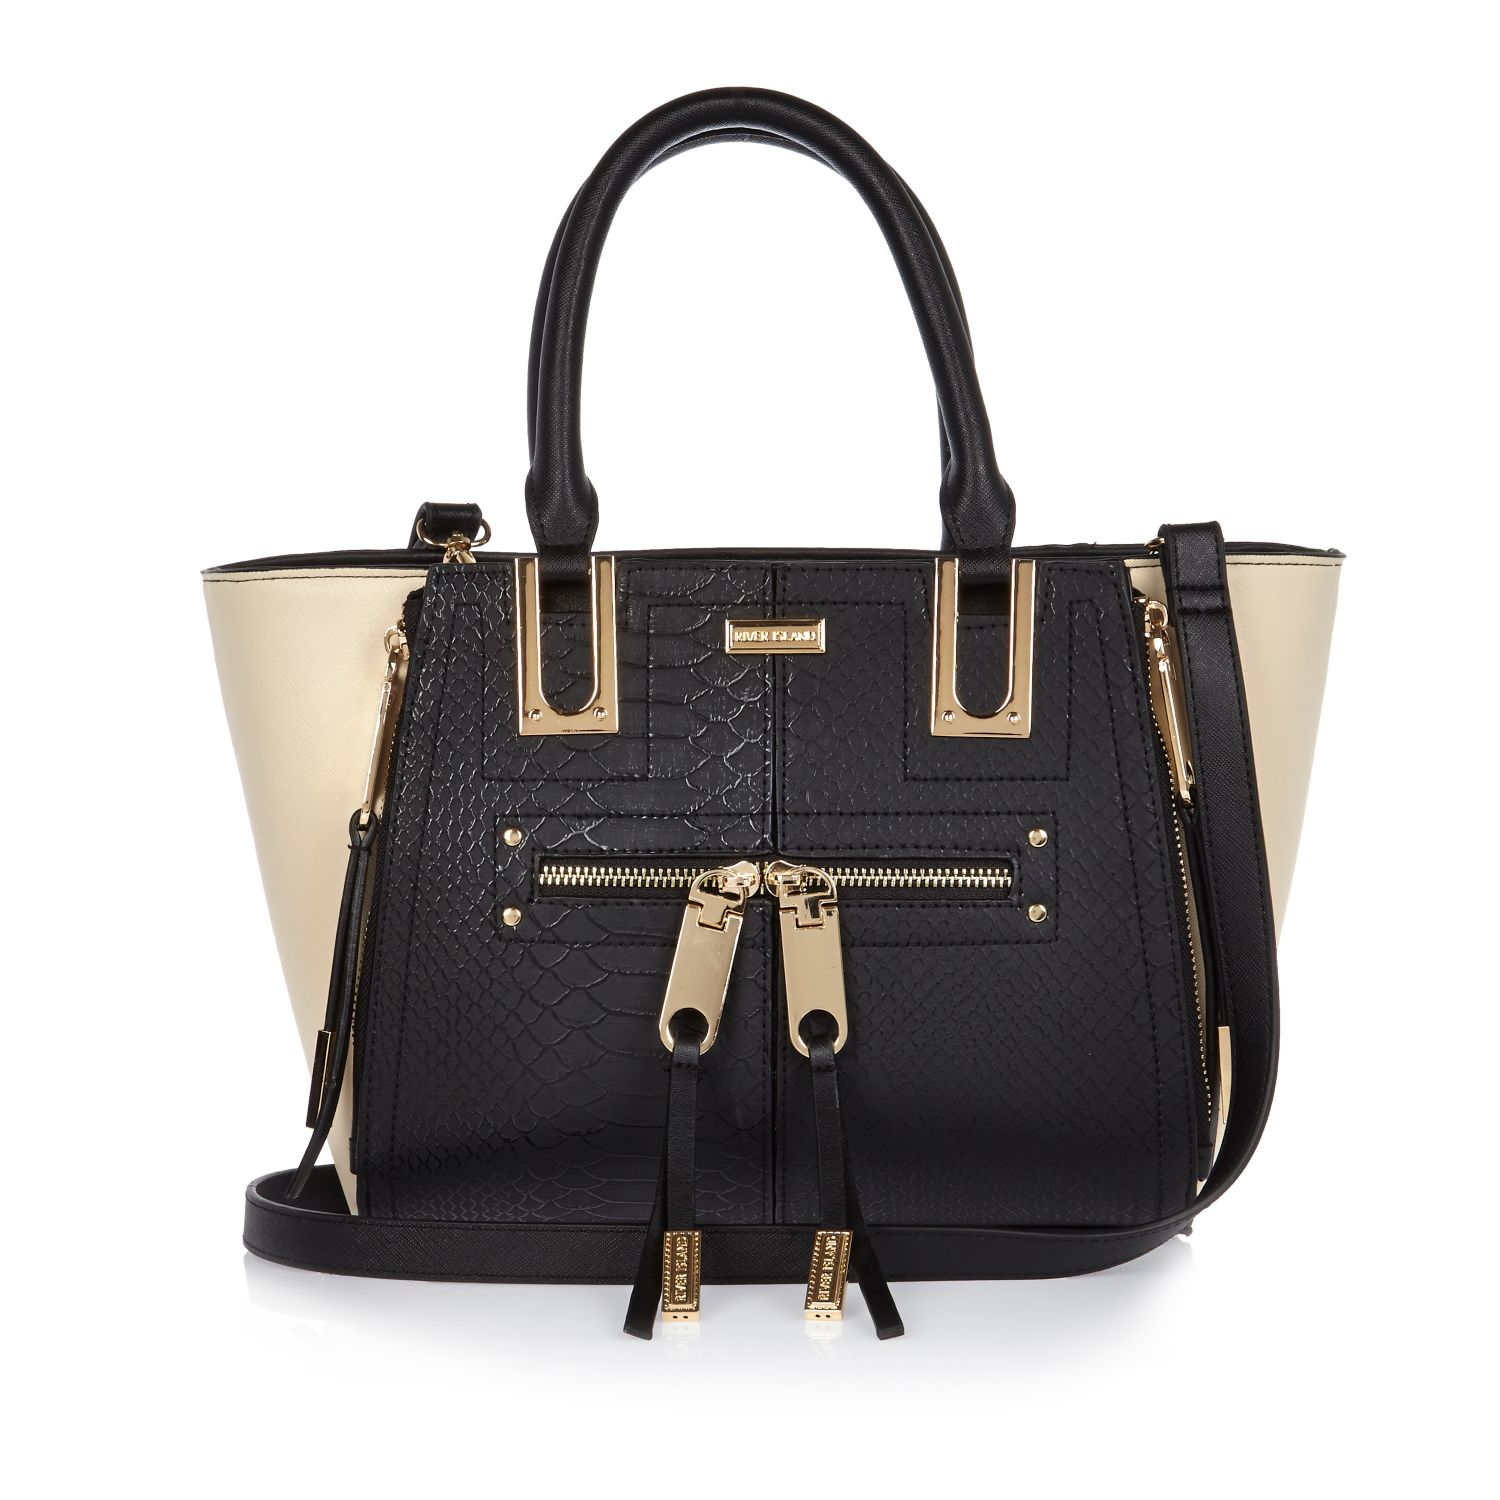 c512fe9a9fe2 ... Tj Maxx Plastic Tote Bags: River Island Black Mini Zip Winged Tote  Handbag In Black